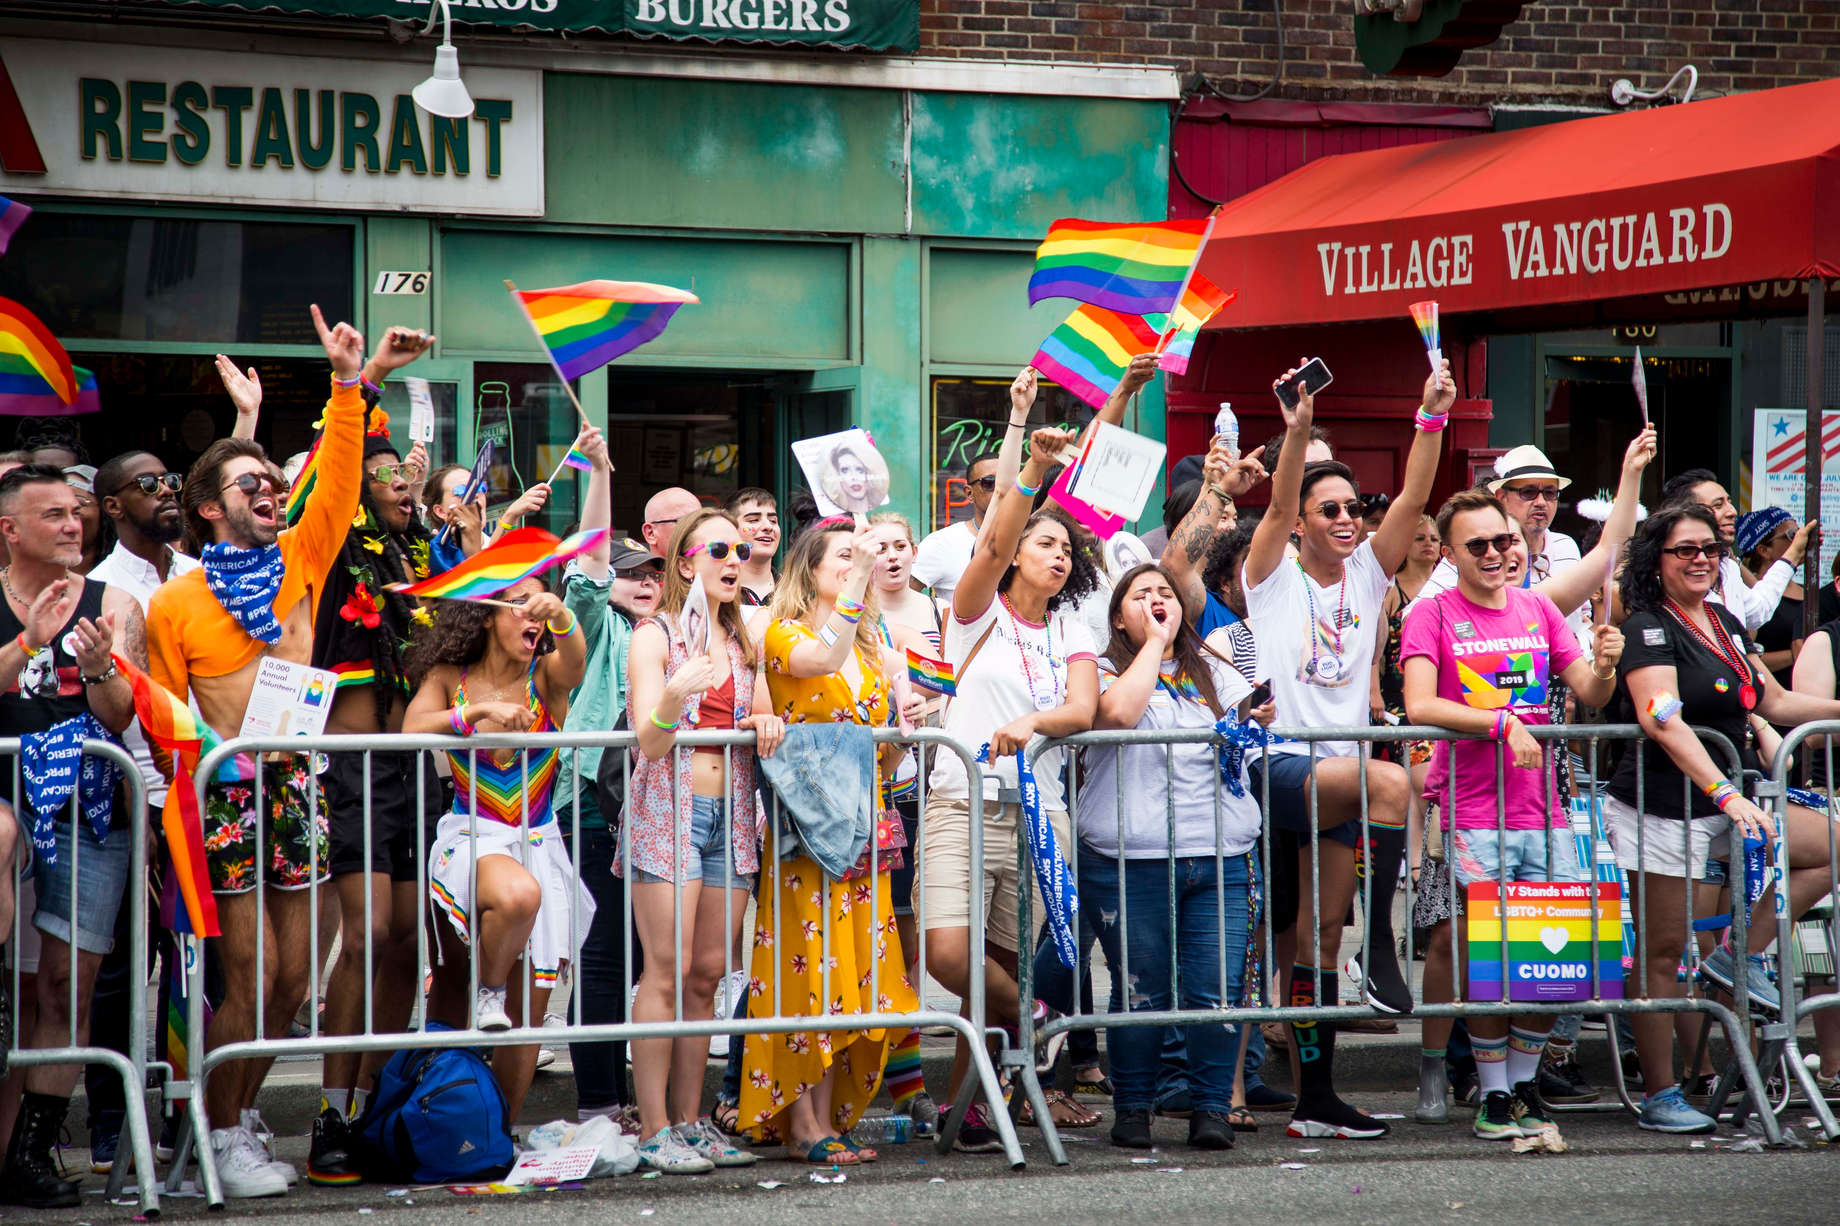 NYC Pride Parade 2019: Route, Start Time, Road Closures